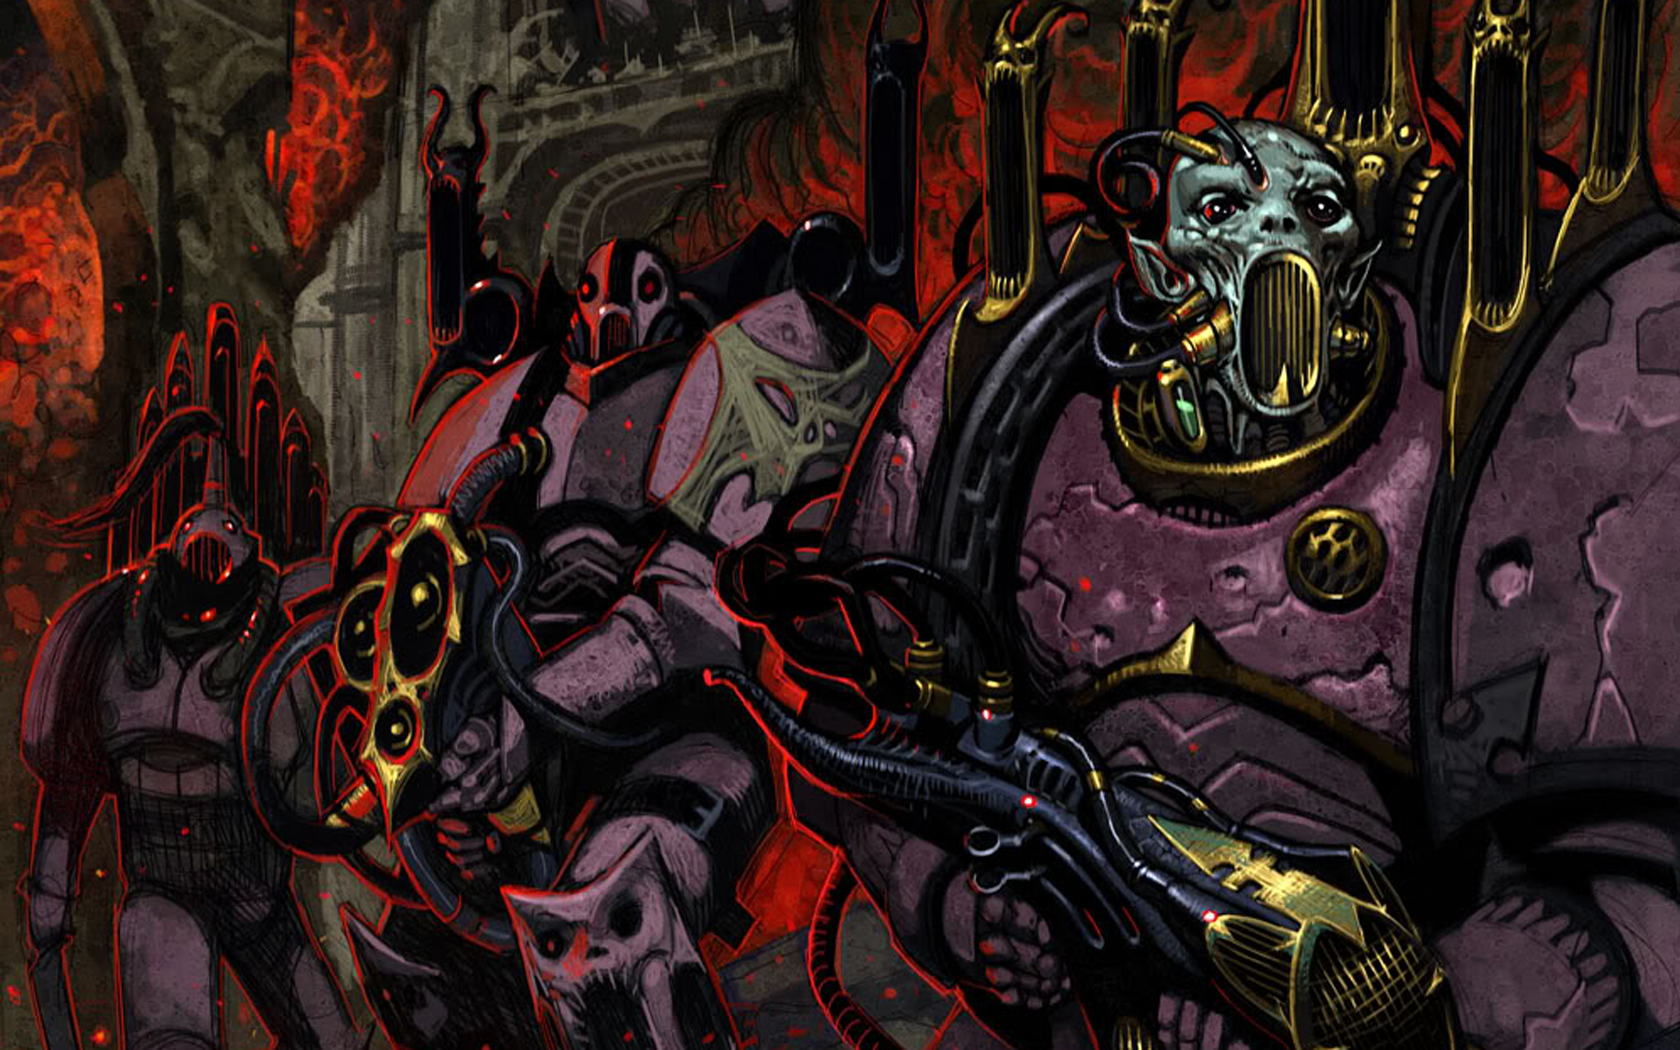 46+] Best Warhammer 40K Wallpapers on WallpaperSafari